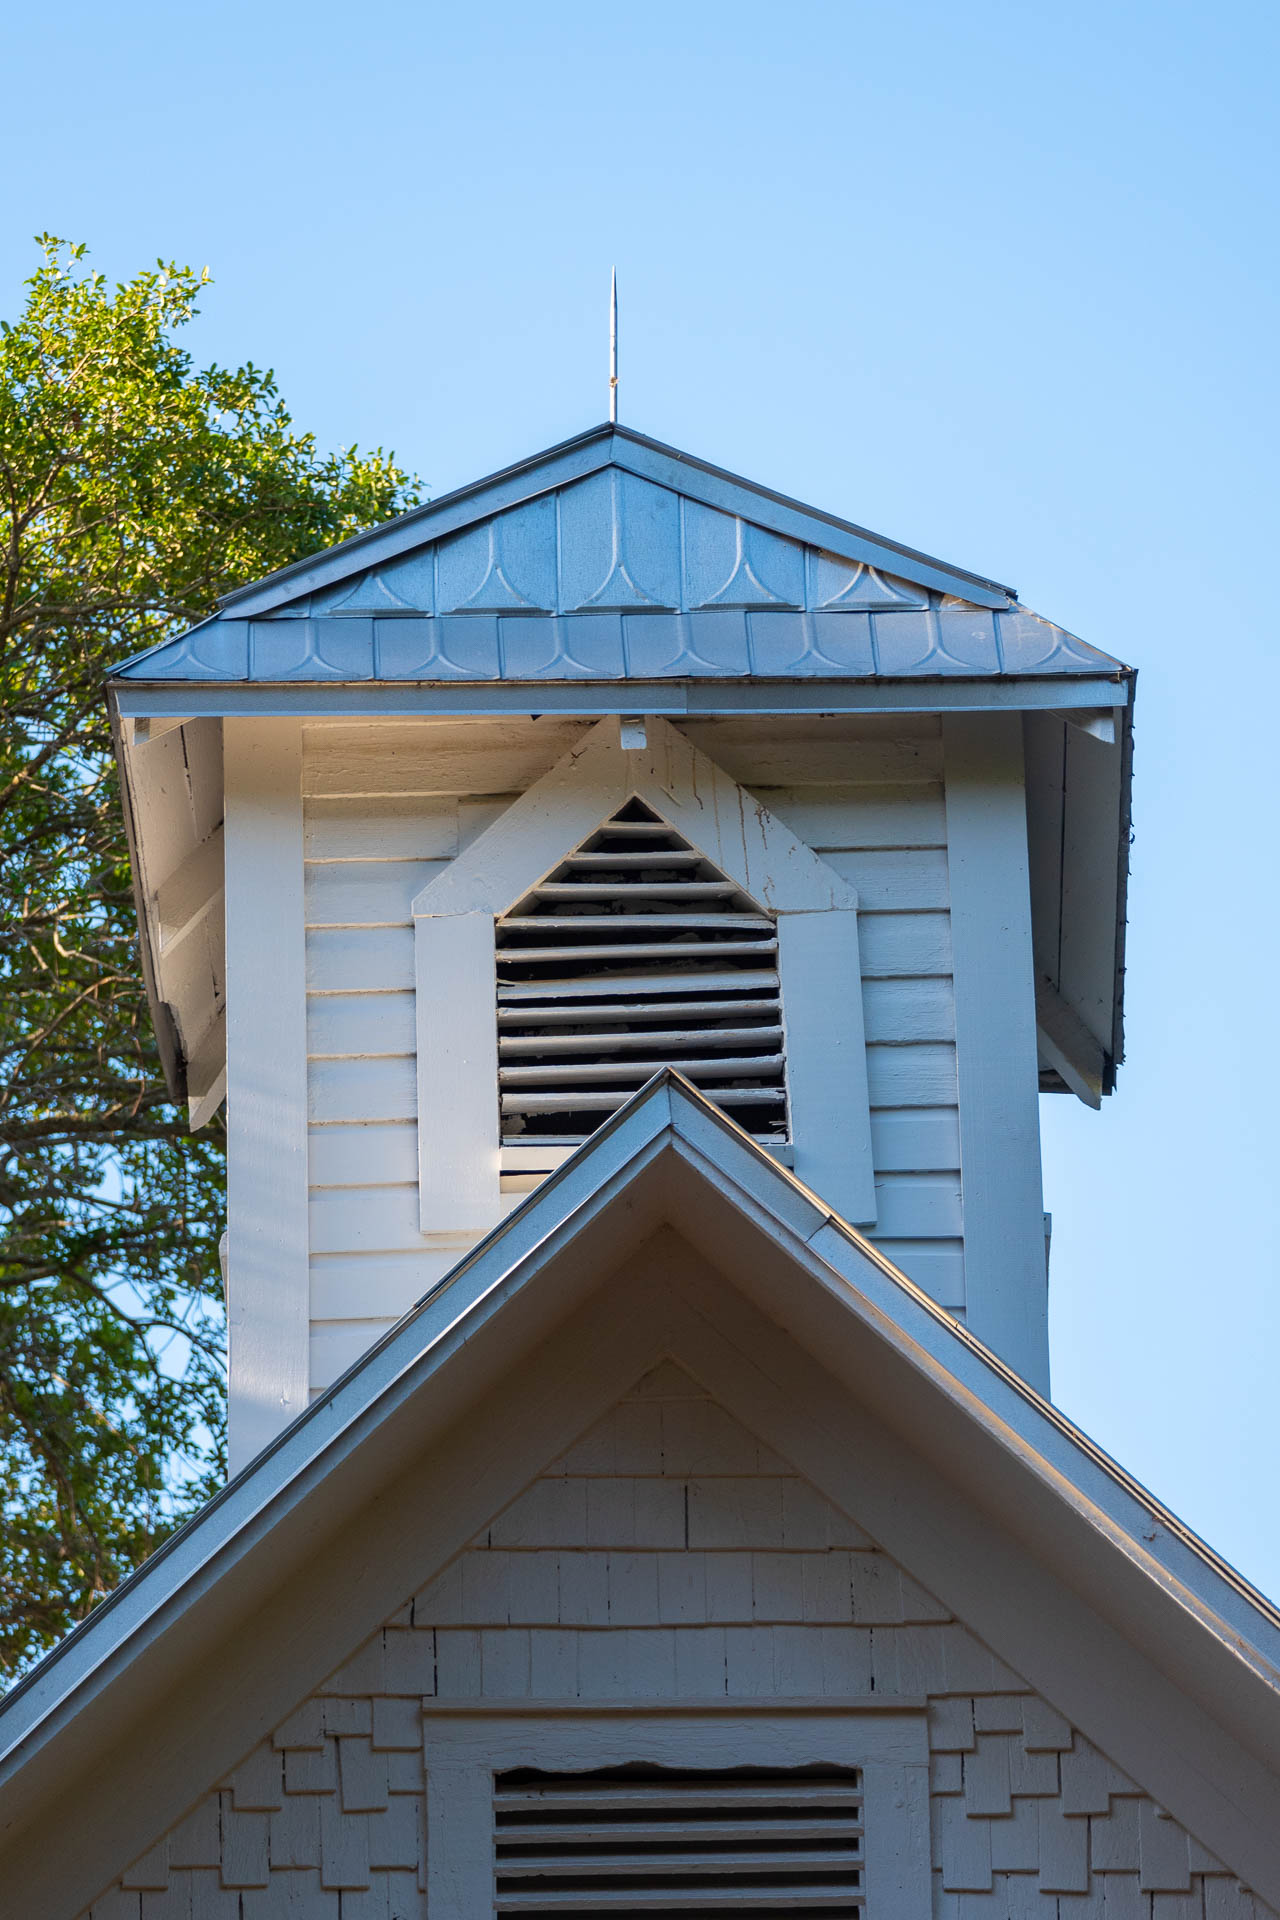 Belltower at the Safety Harbor Church